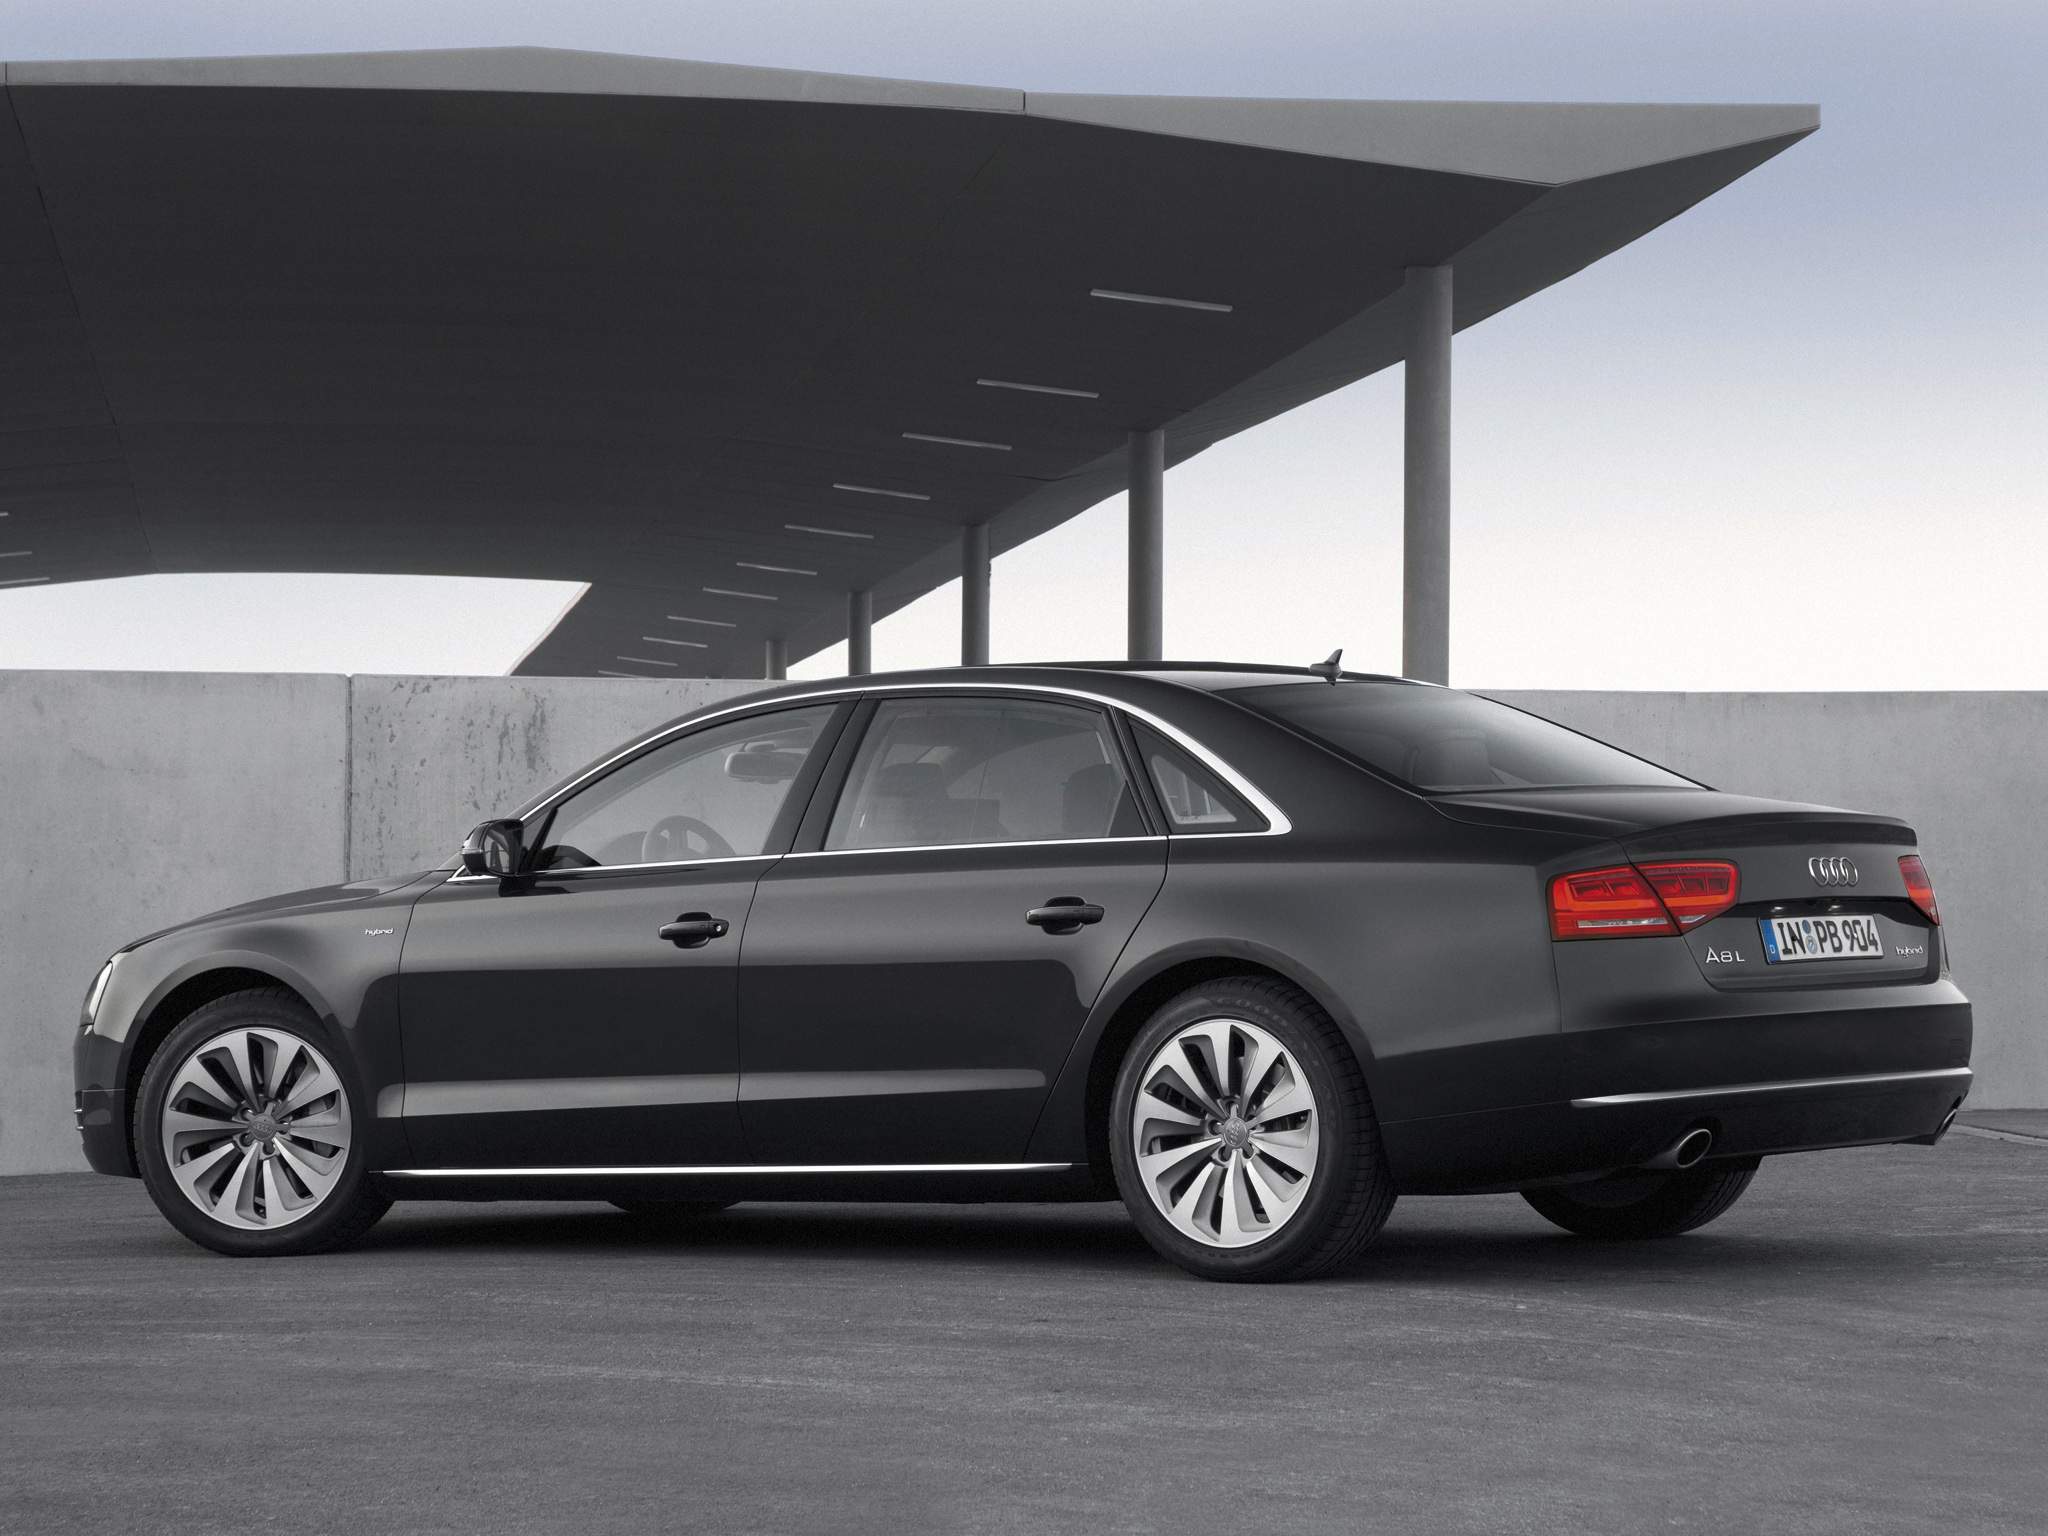 Dillons Big Turbo B5 Audi A4 1 8t Quattro furthermore 2018 Audi Q7 in addition 3 0 Vacuum Leak 2761976 likewise Chlodnica Oleju Audi A8 057 117 021 P Wroclaw 2 6bea9f Nr53375380 furthermore Sedan4d. on audi a8 4 2 tdi quattro